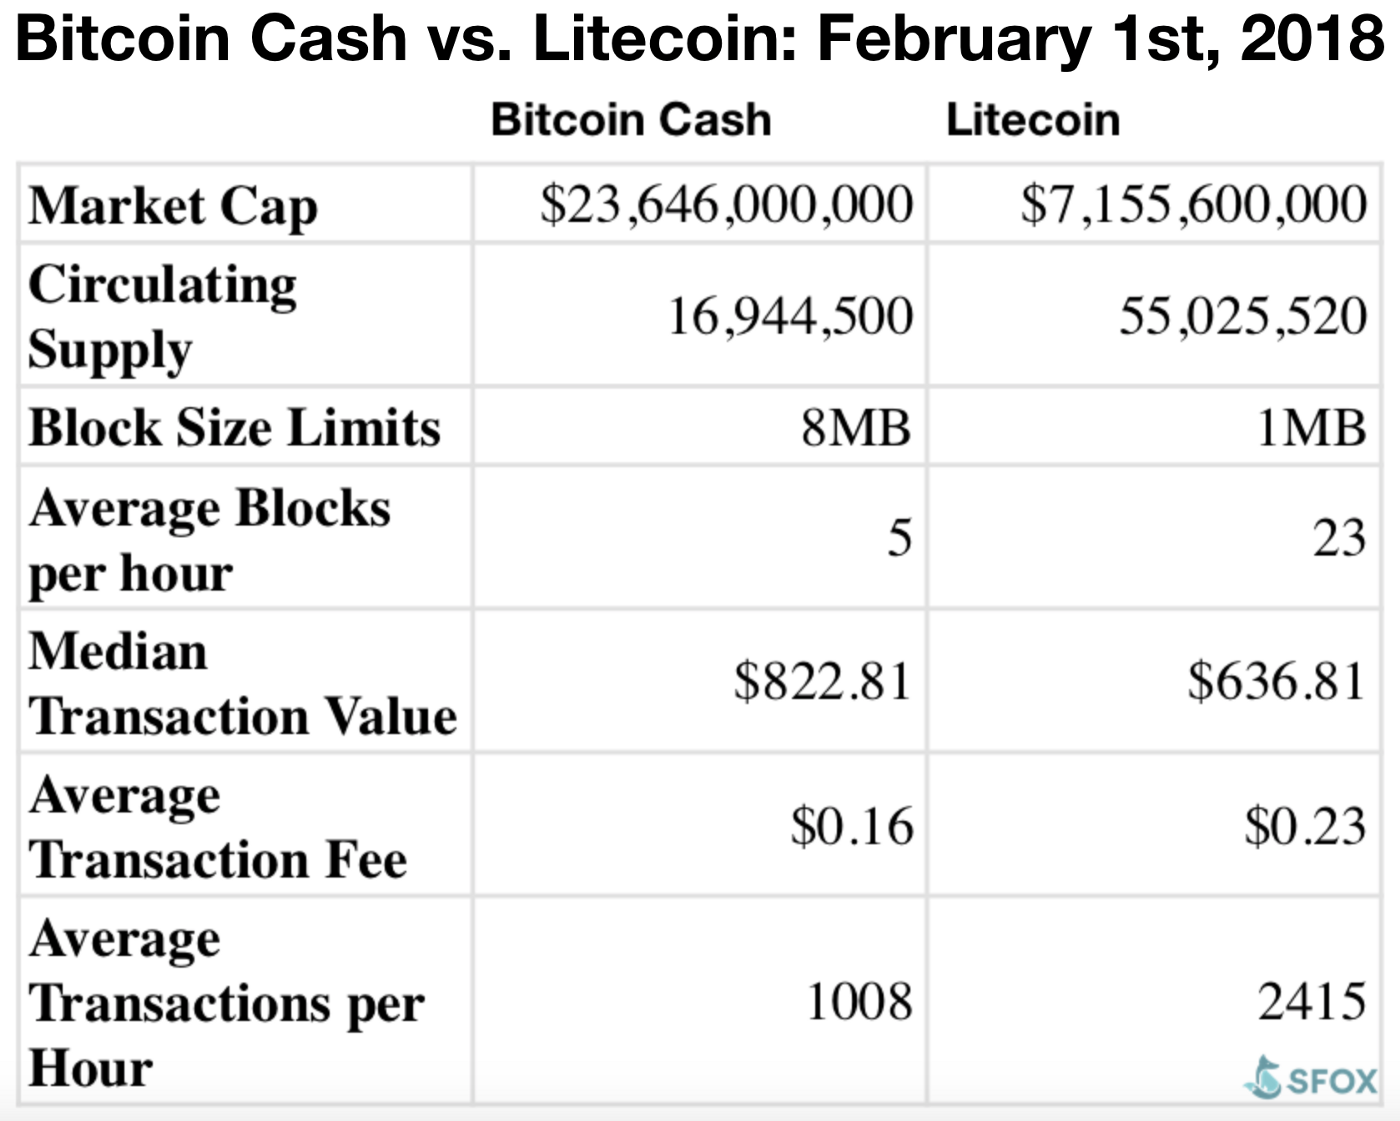 Bitcoin Cash vs Litecoin: The Fight for Electronic Cash